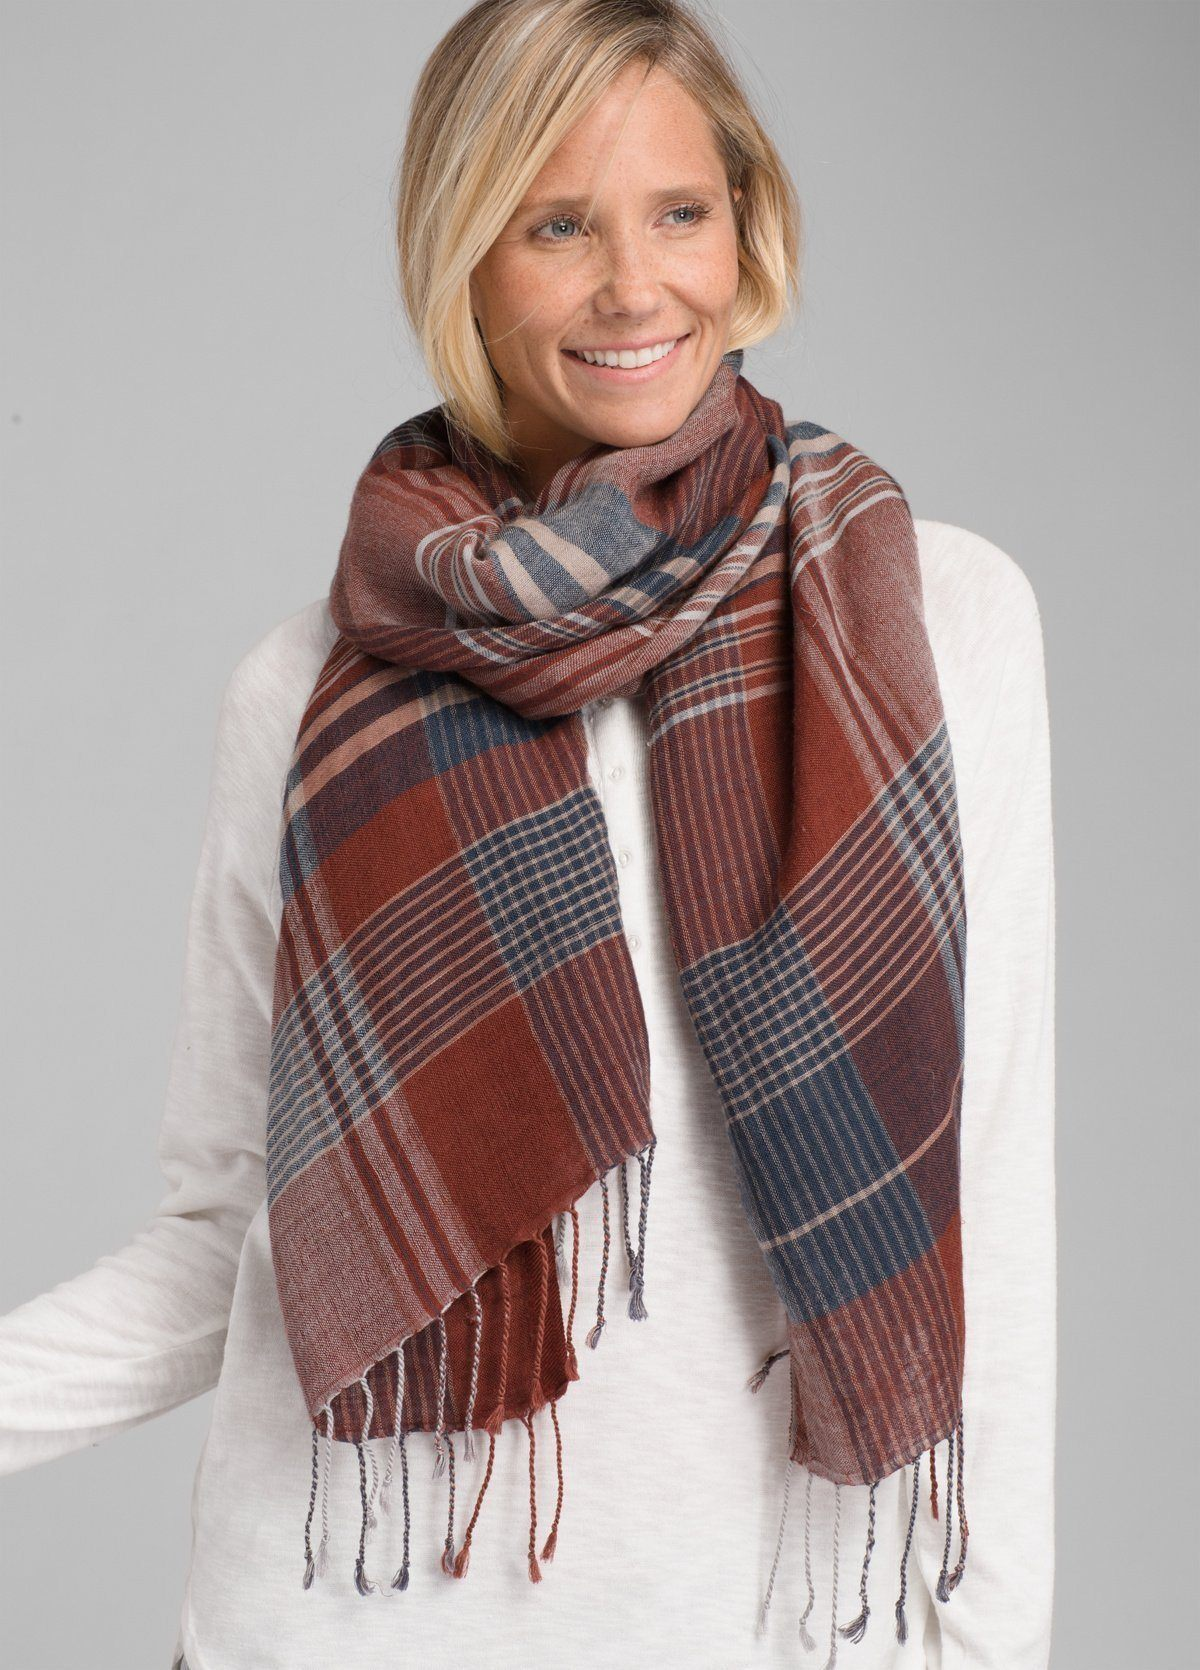 PrAna - Women's Skylan Scarf - Wool & TENCEL™ Modal - Weekendbee - sustainable sportswear